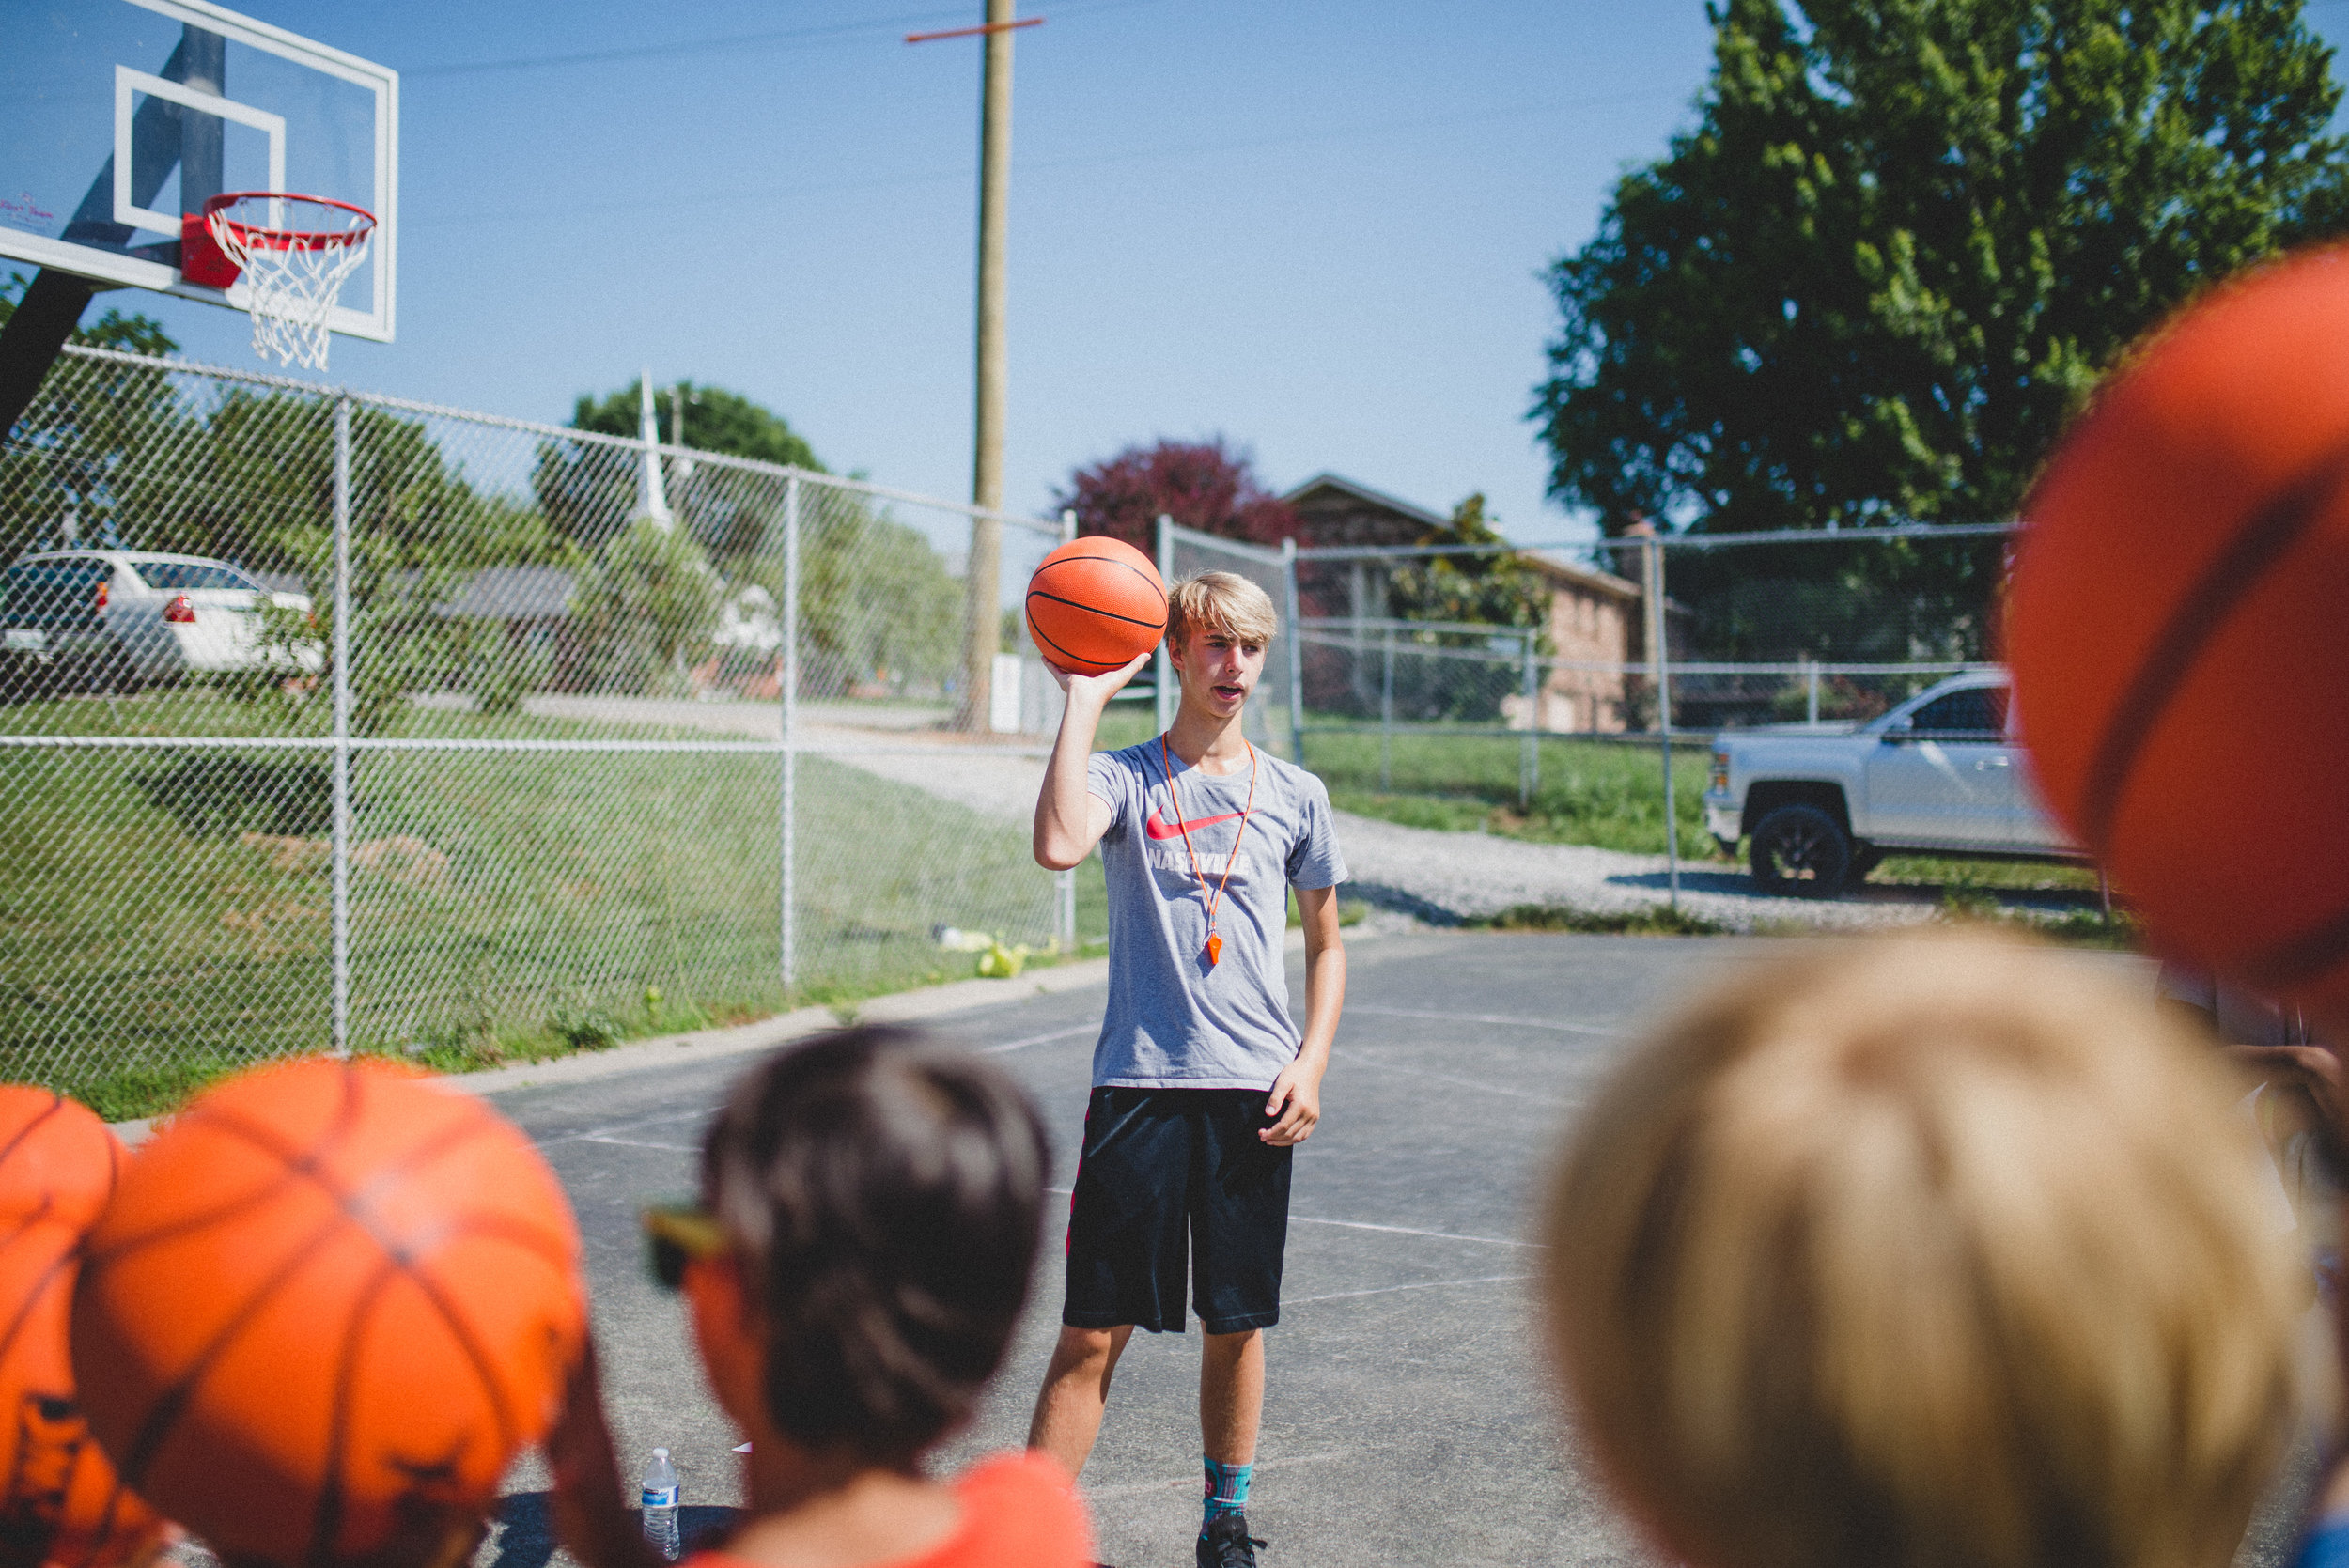 """Campers at Camp Skillz know this WorkWell employee as """"Coach Buckets,"""" and find him entertaining and encouraging, and he's good at basketball."""